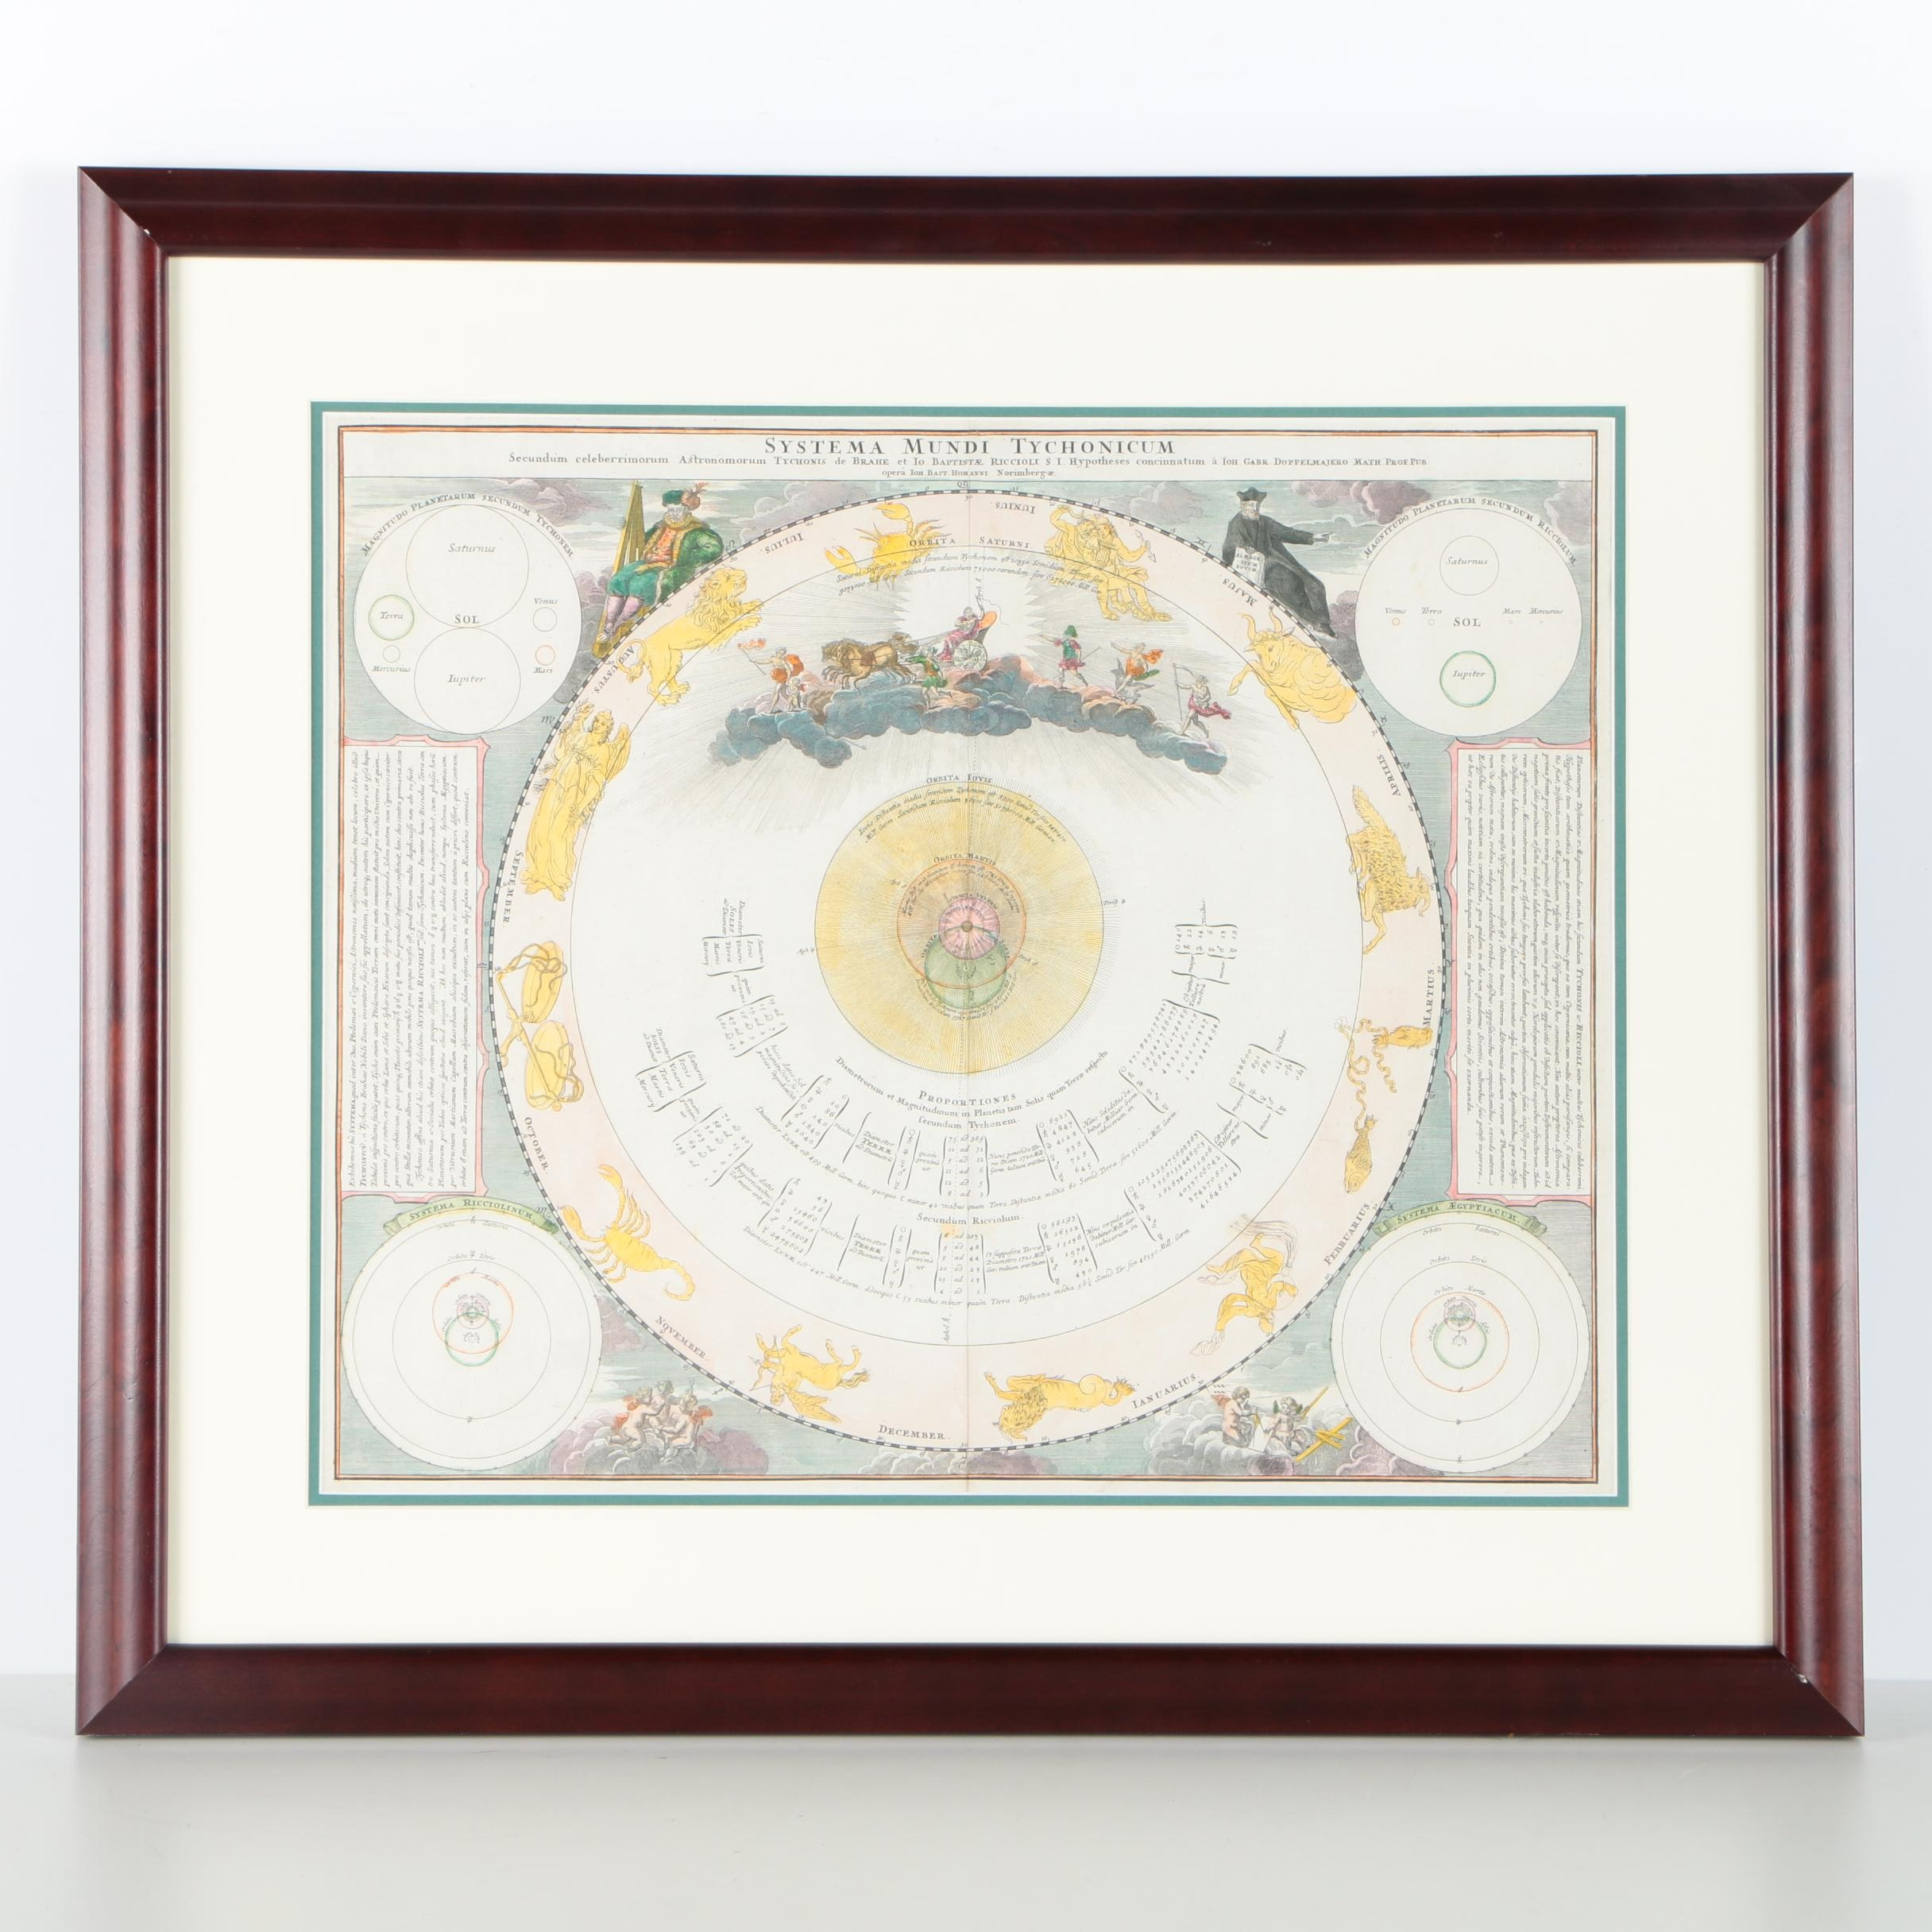 "Johann Doppelmayr Hand Colored Map of Solar System on Paper ""Systema Mundi Tychonicum"""